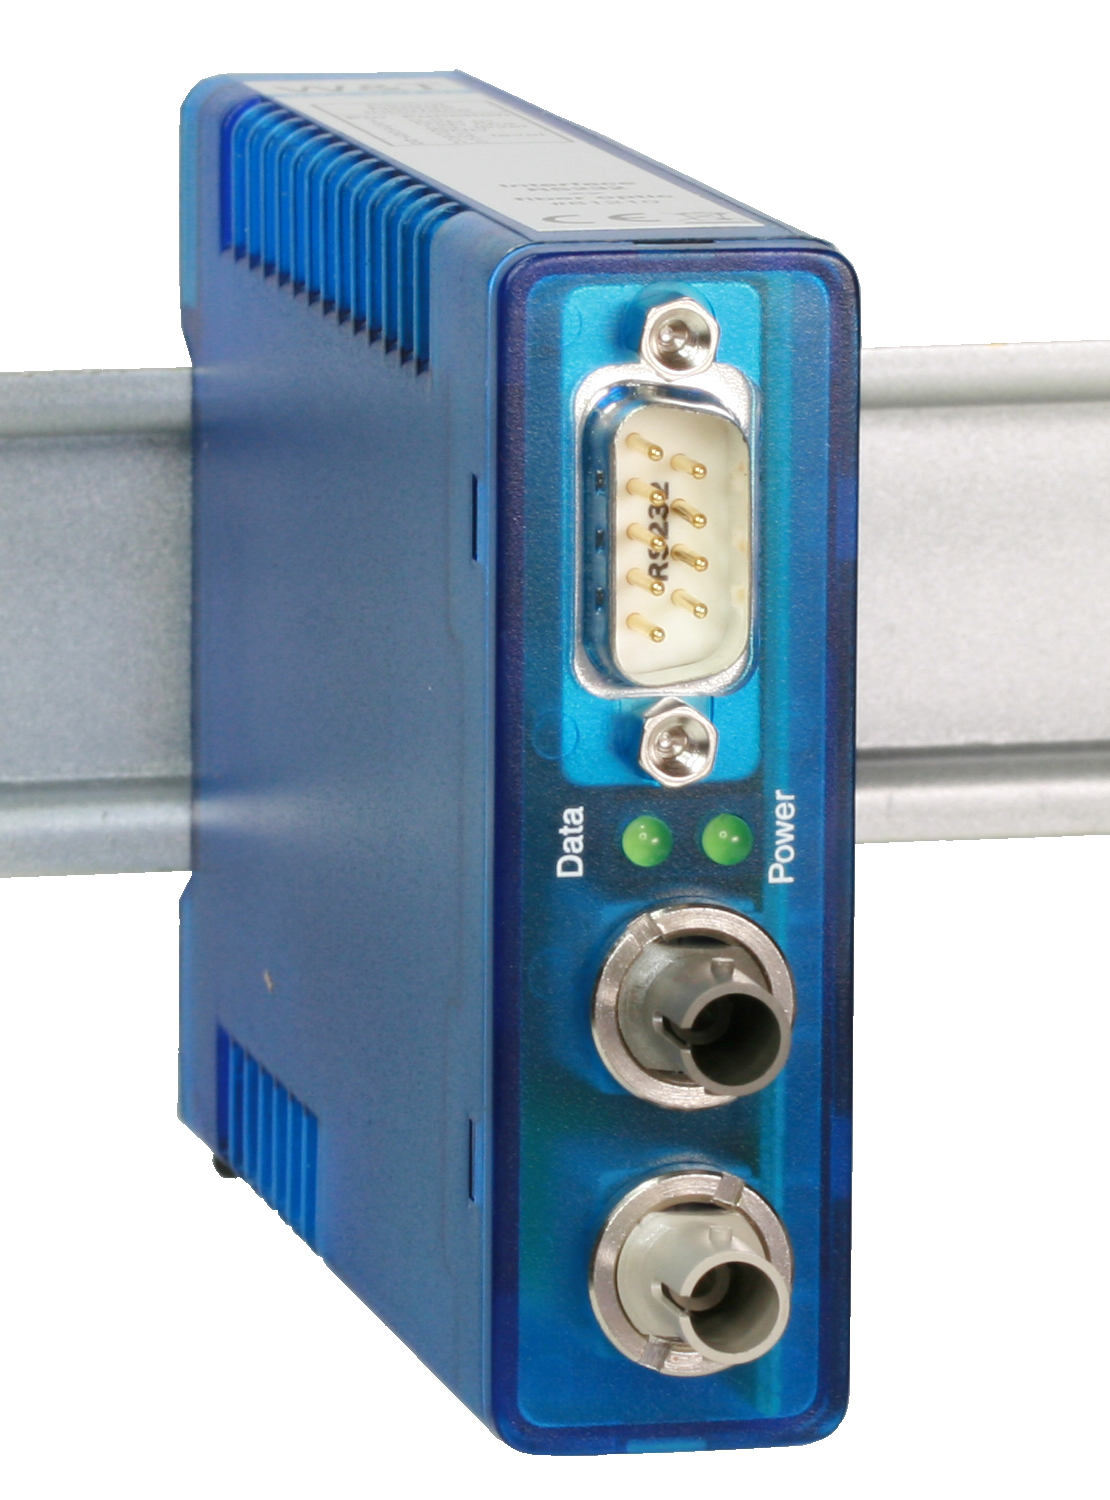 ST fiber-optic line  20mA interface